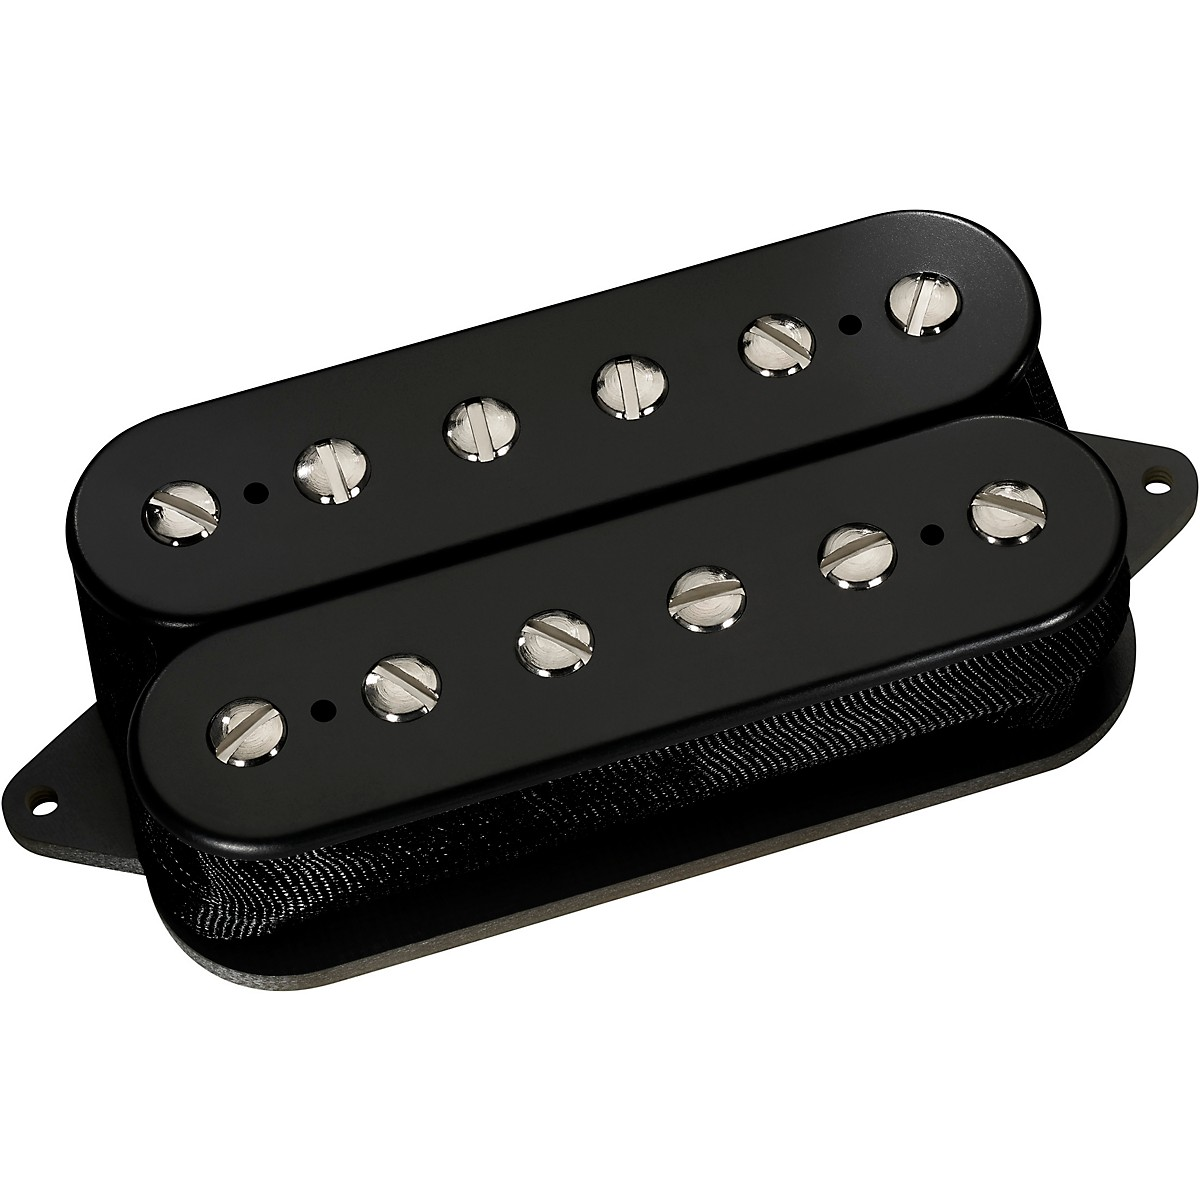 DiMarzio Dreamcatcher Bridge Humbucker Electric Guitar Pickup